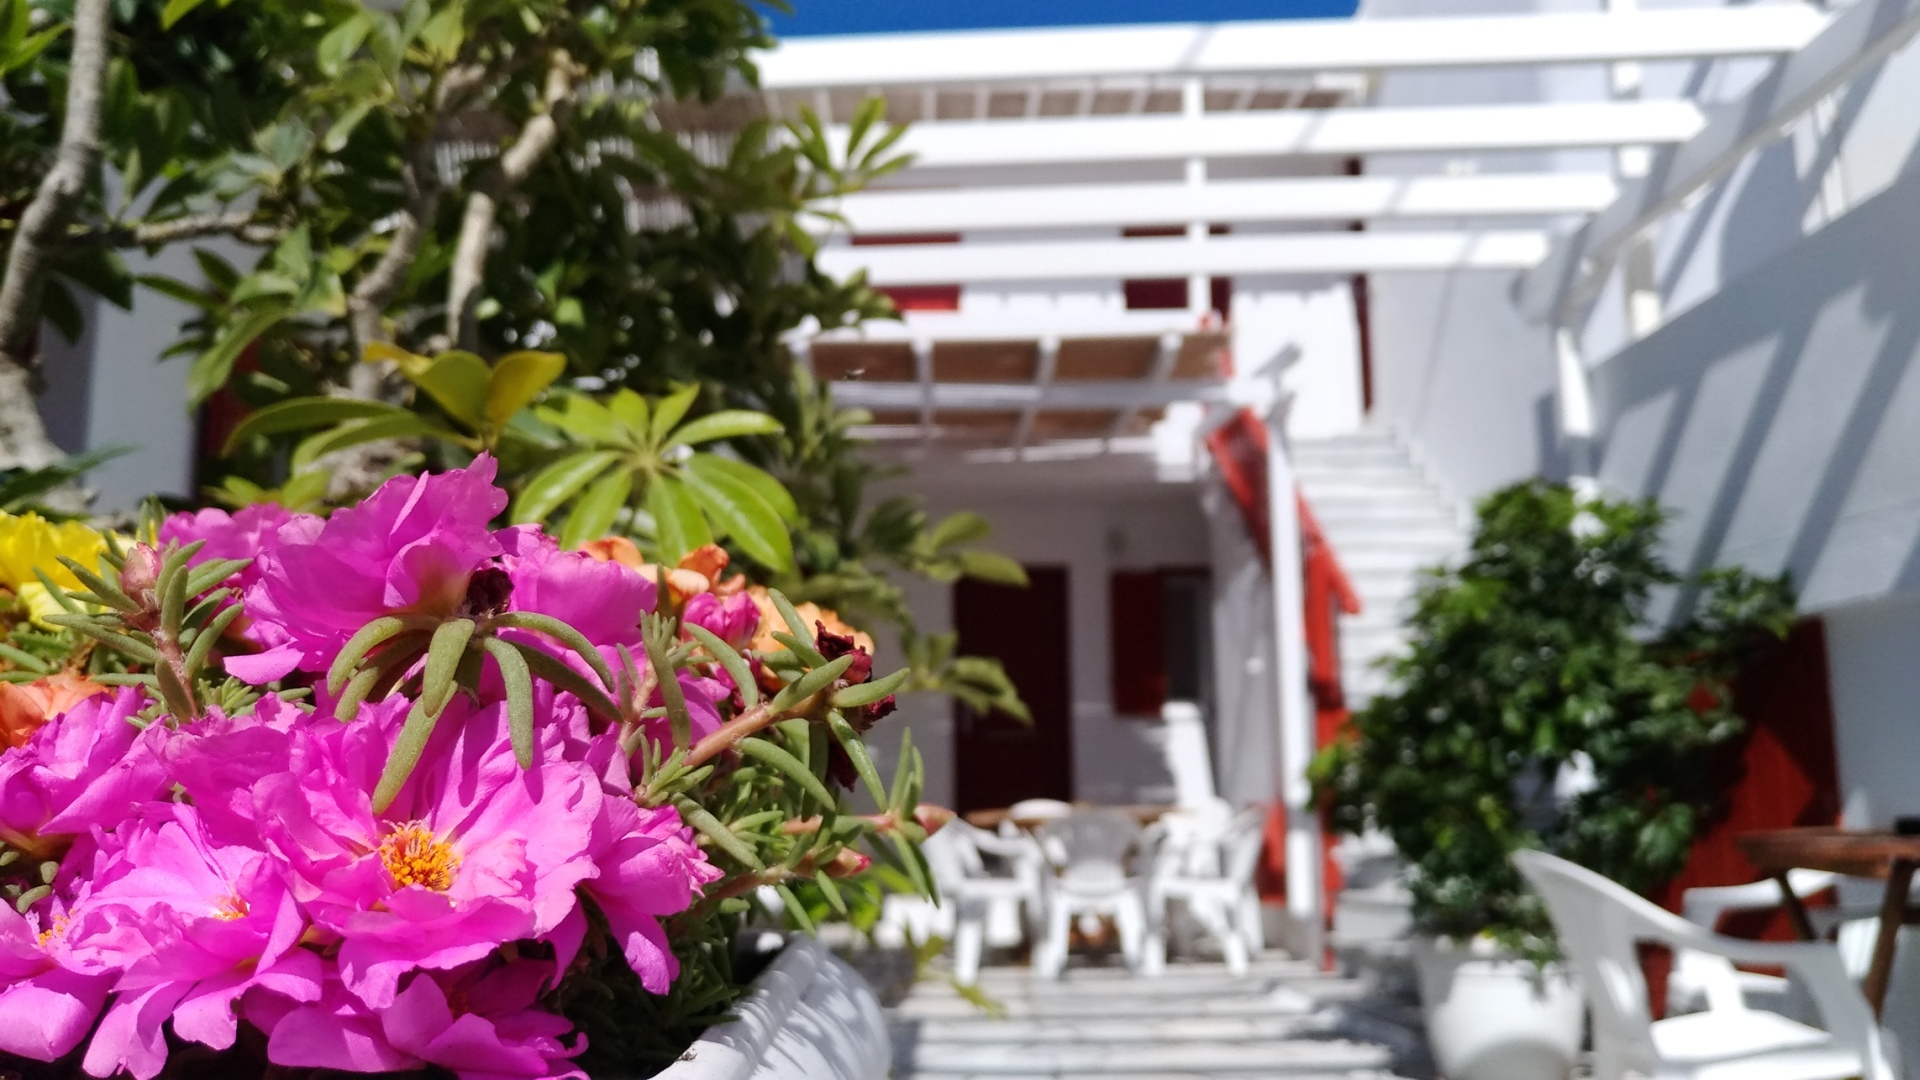 Mykonos Marina In Town - Rooms for rent - Slider 2